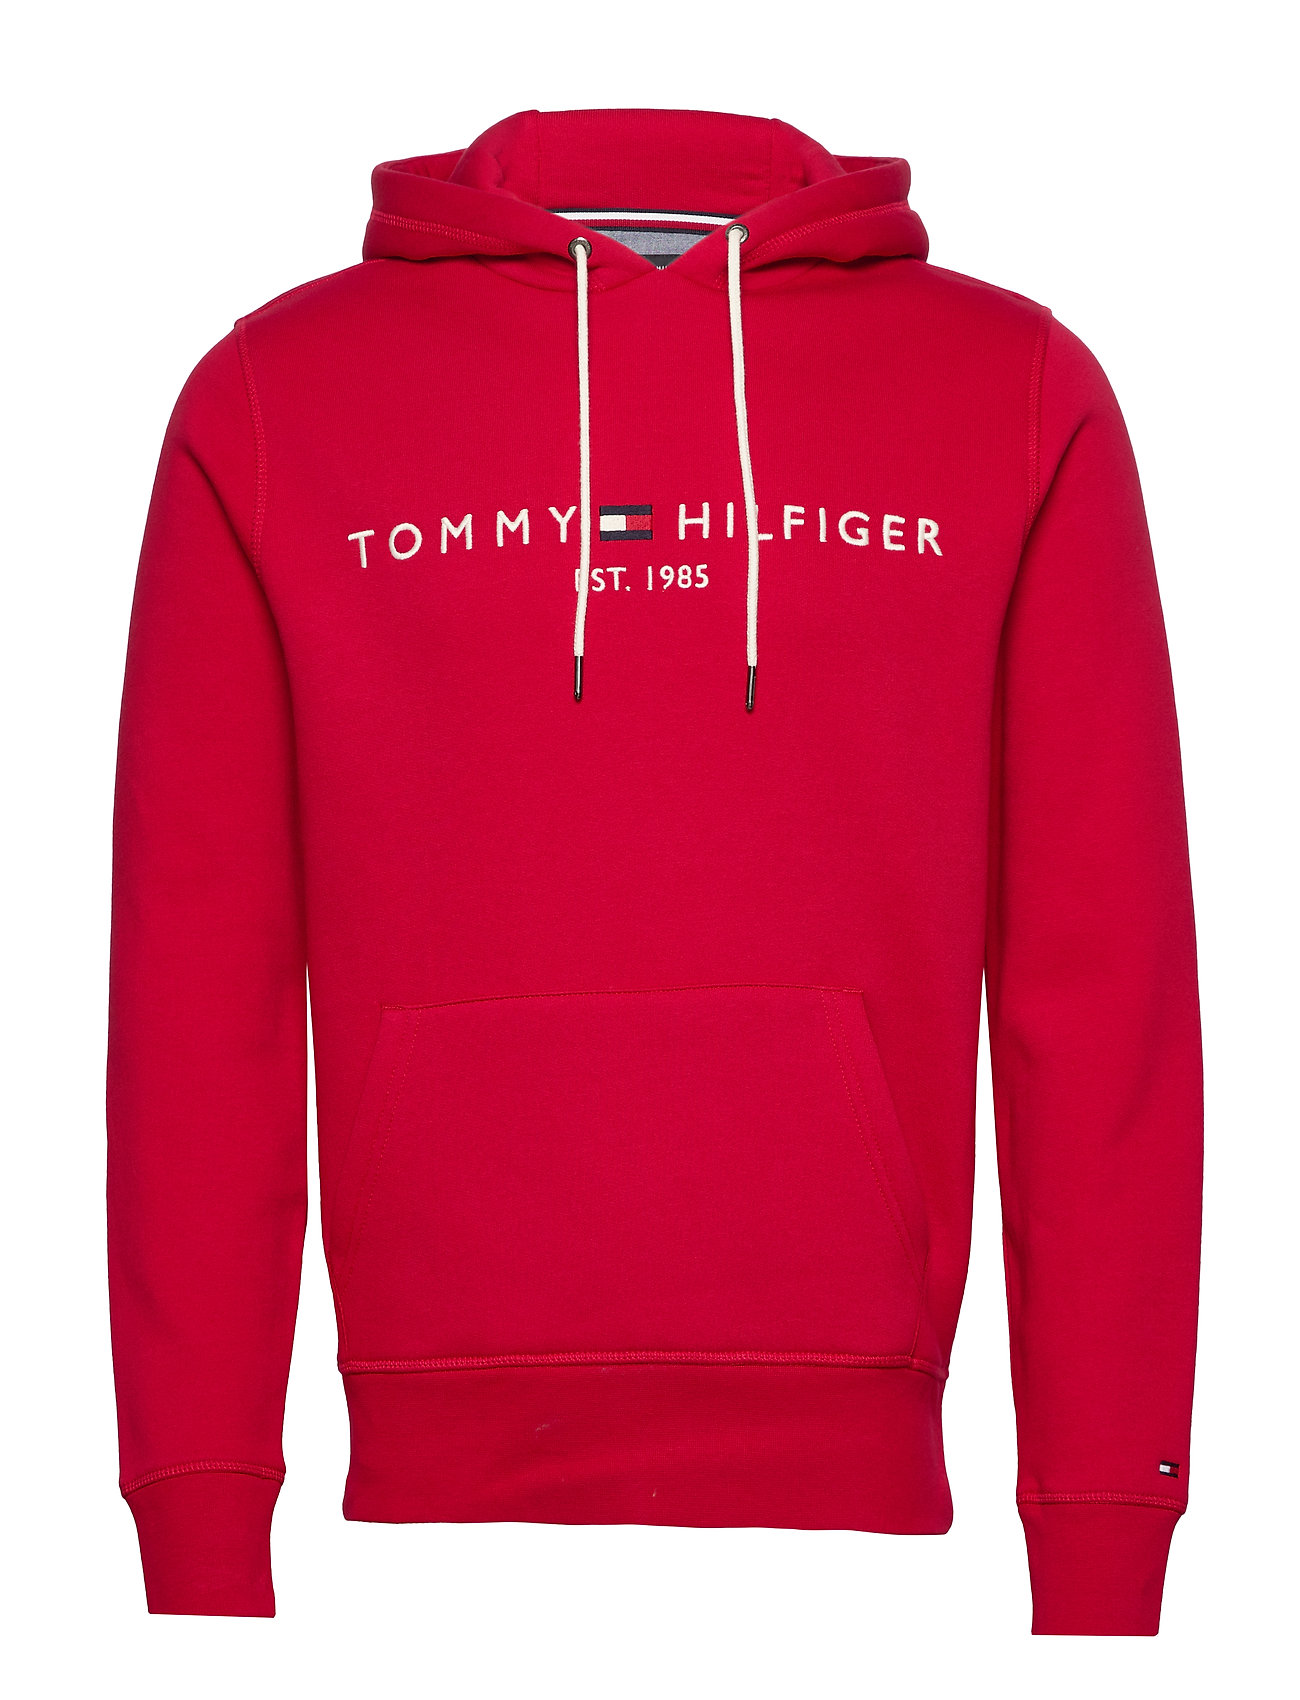 Tommy Hilfiger TOMMY LOGO HOODY - PRIMARY RED